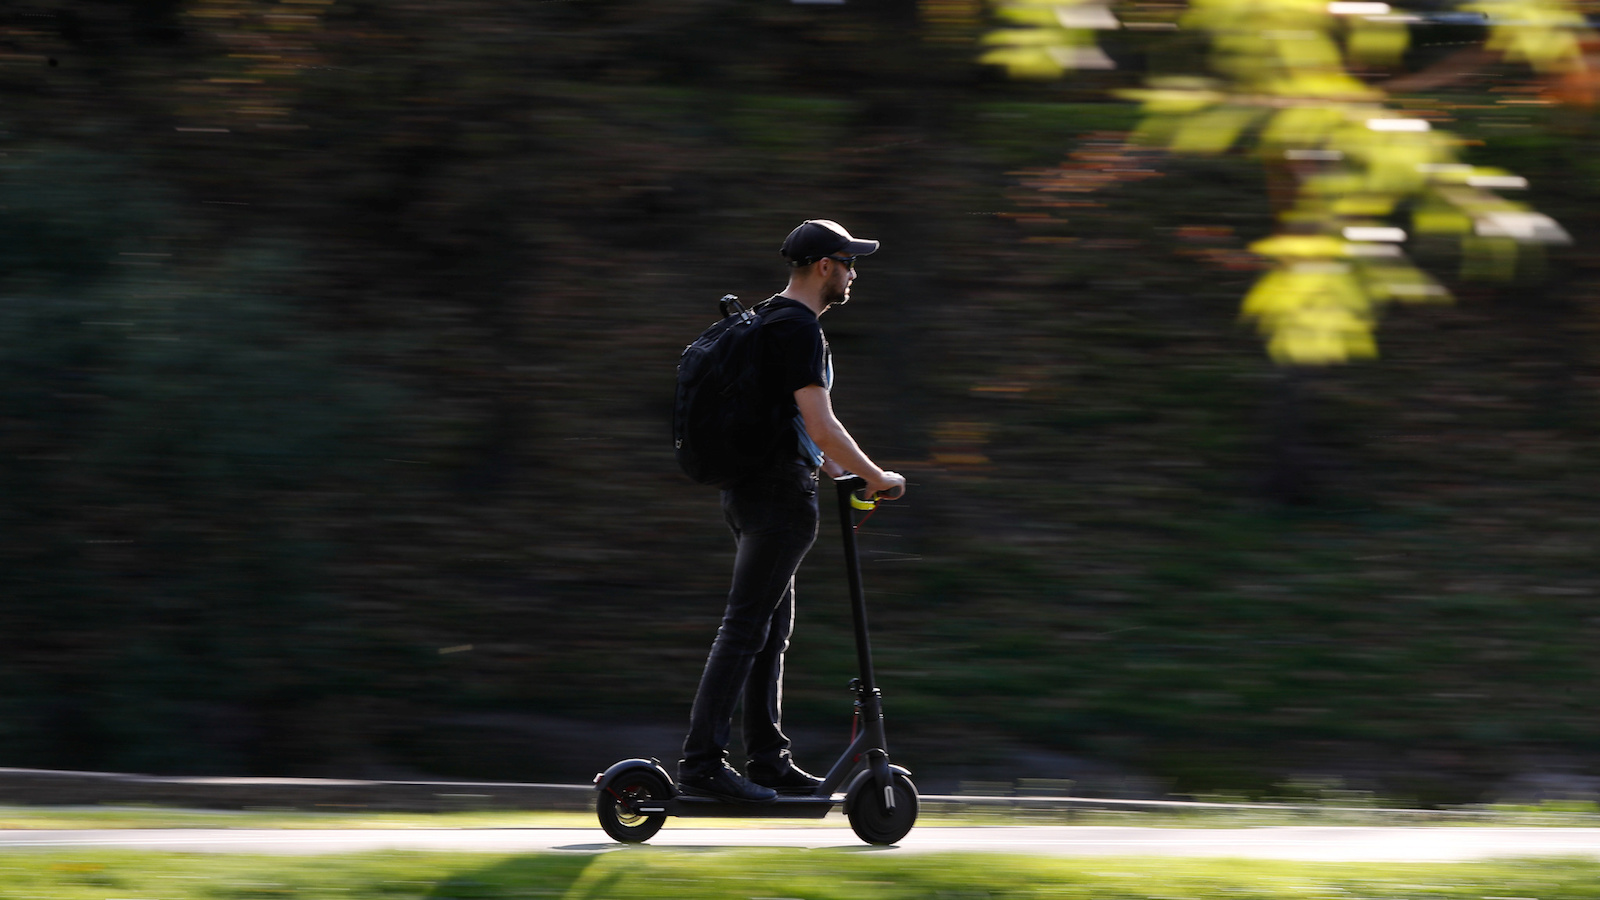 A man with a beard rides an electric scooter